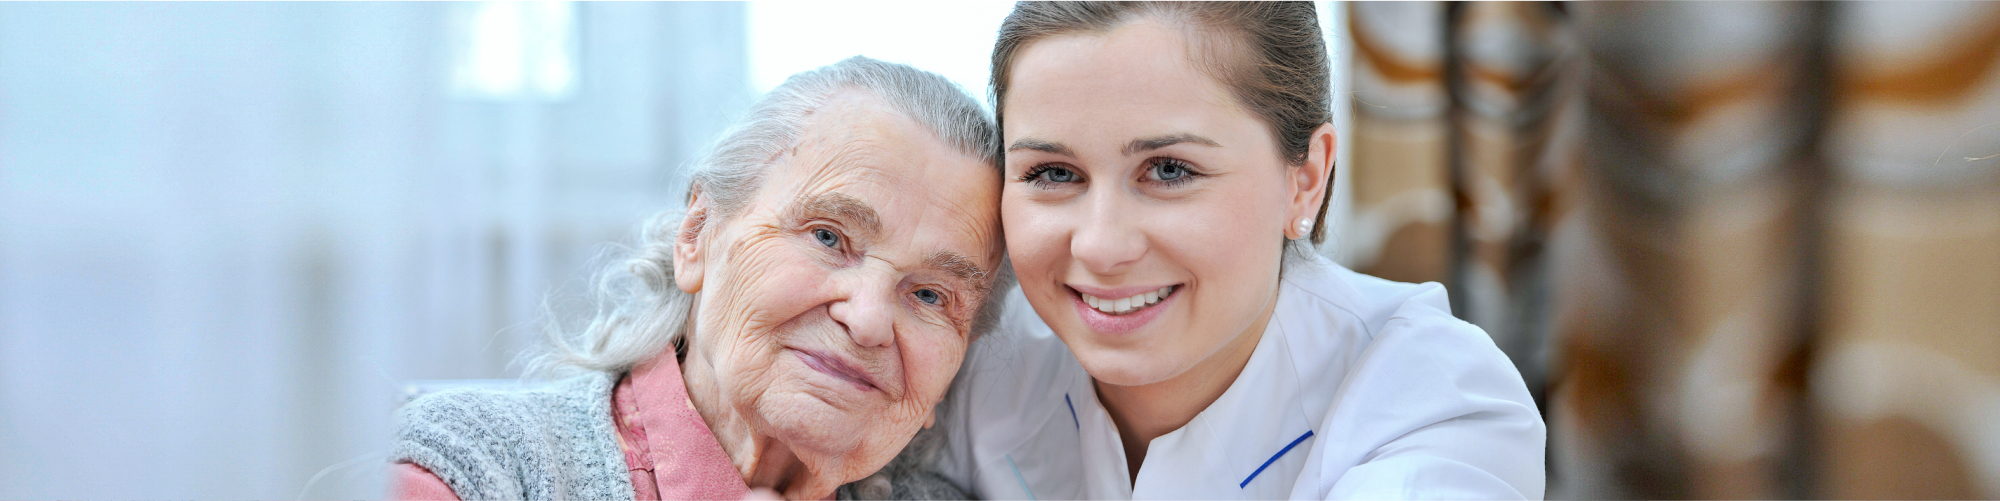 caregiver smiling along with her patient